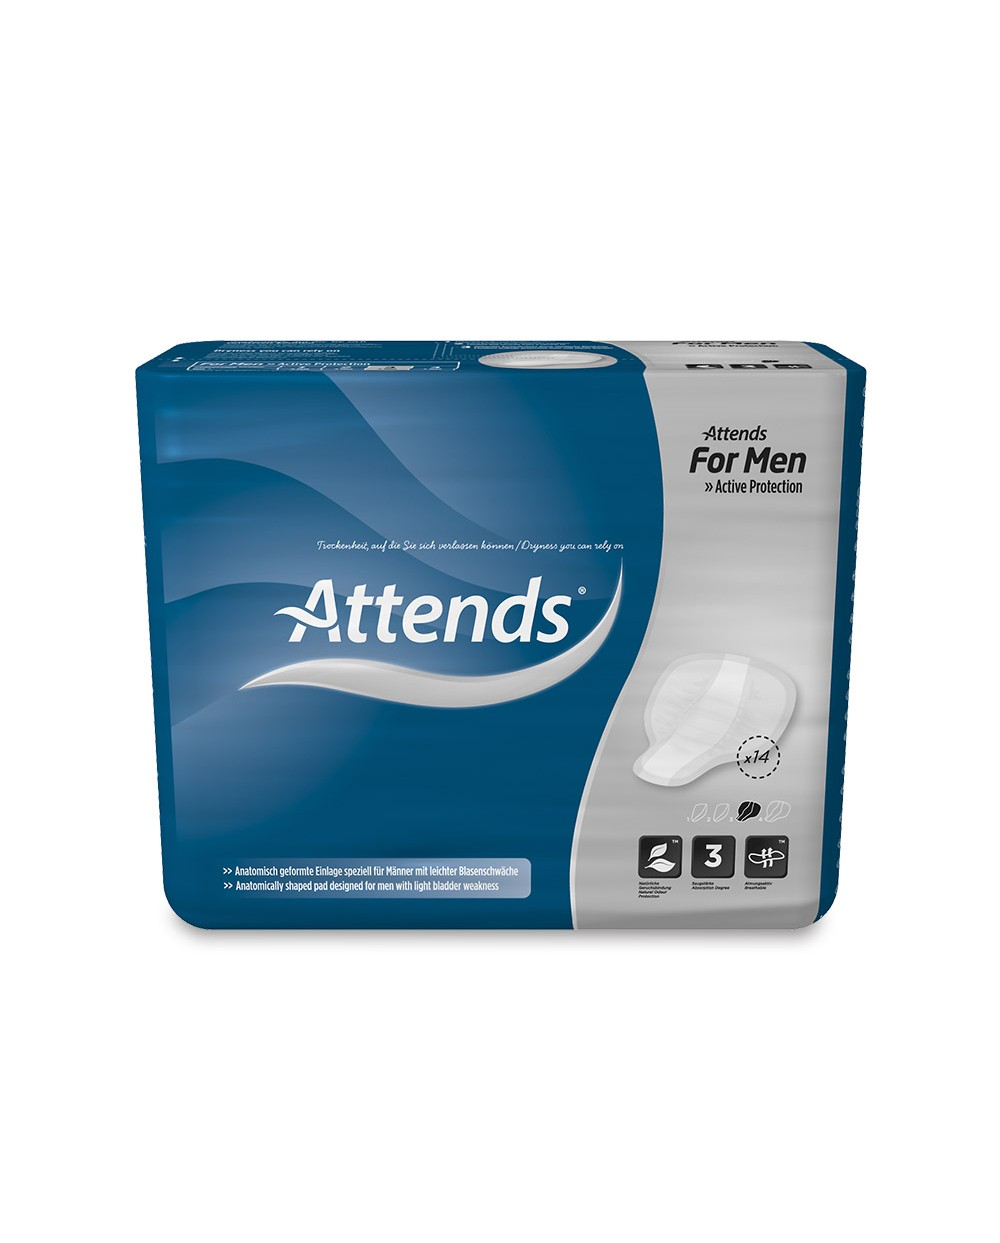 ATTENDS For Men 3 - 14 protections